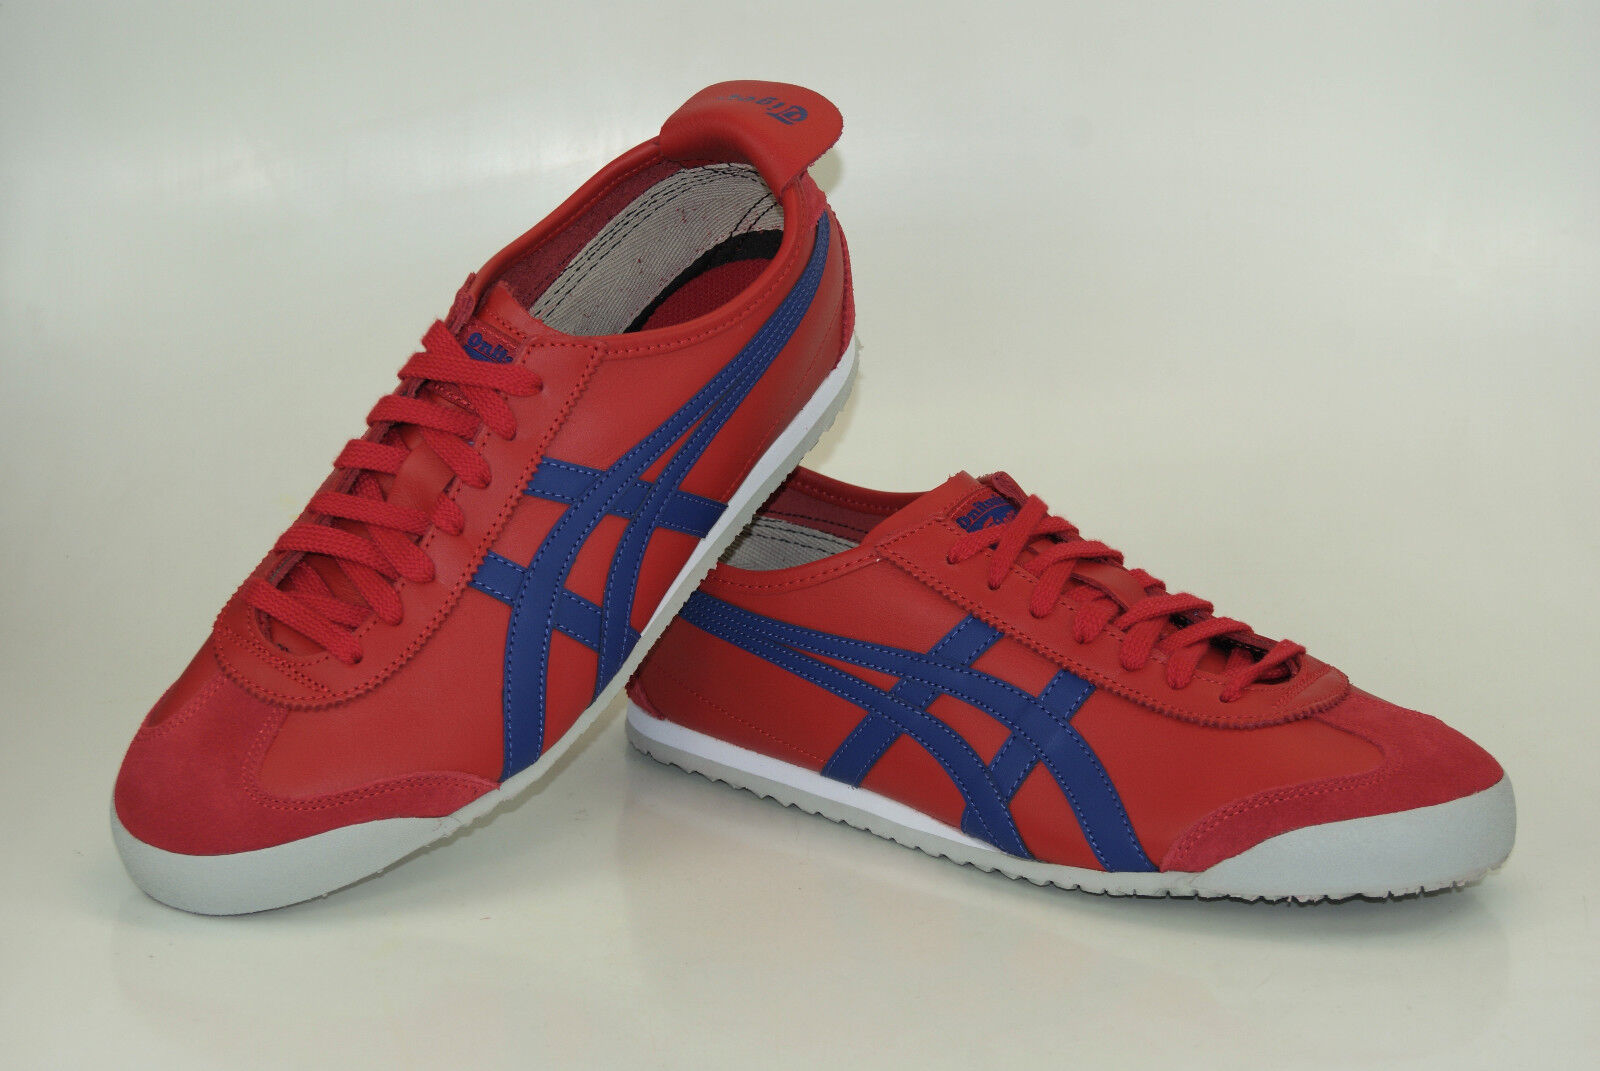 Asics Onitsuka Tiger Mexico 66 Retro Sneakers Sneakers Sneakers Trainers Men's Women's shoes 5bde4a